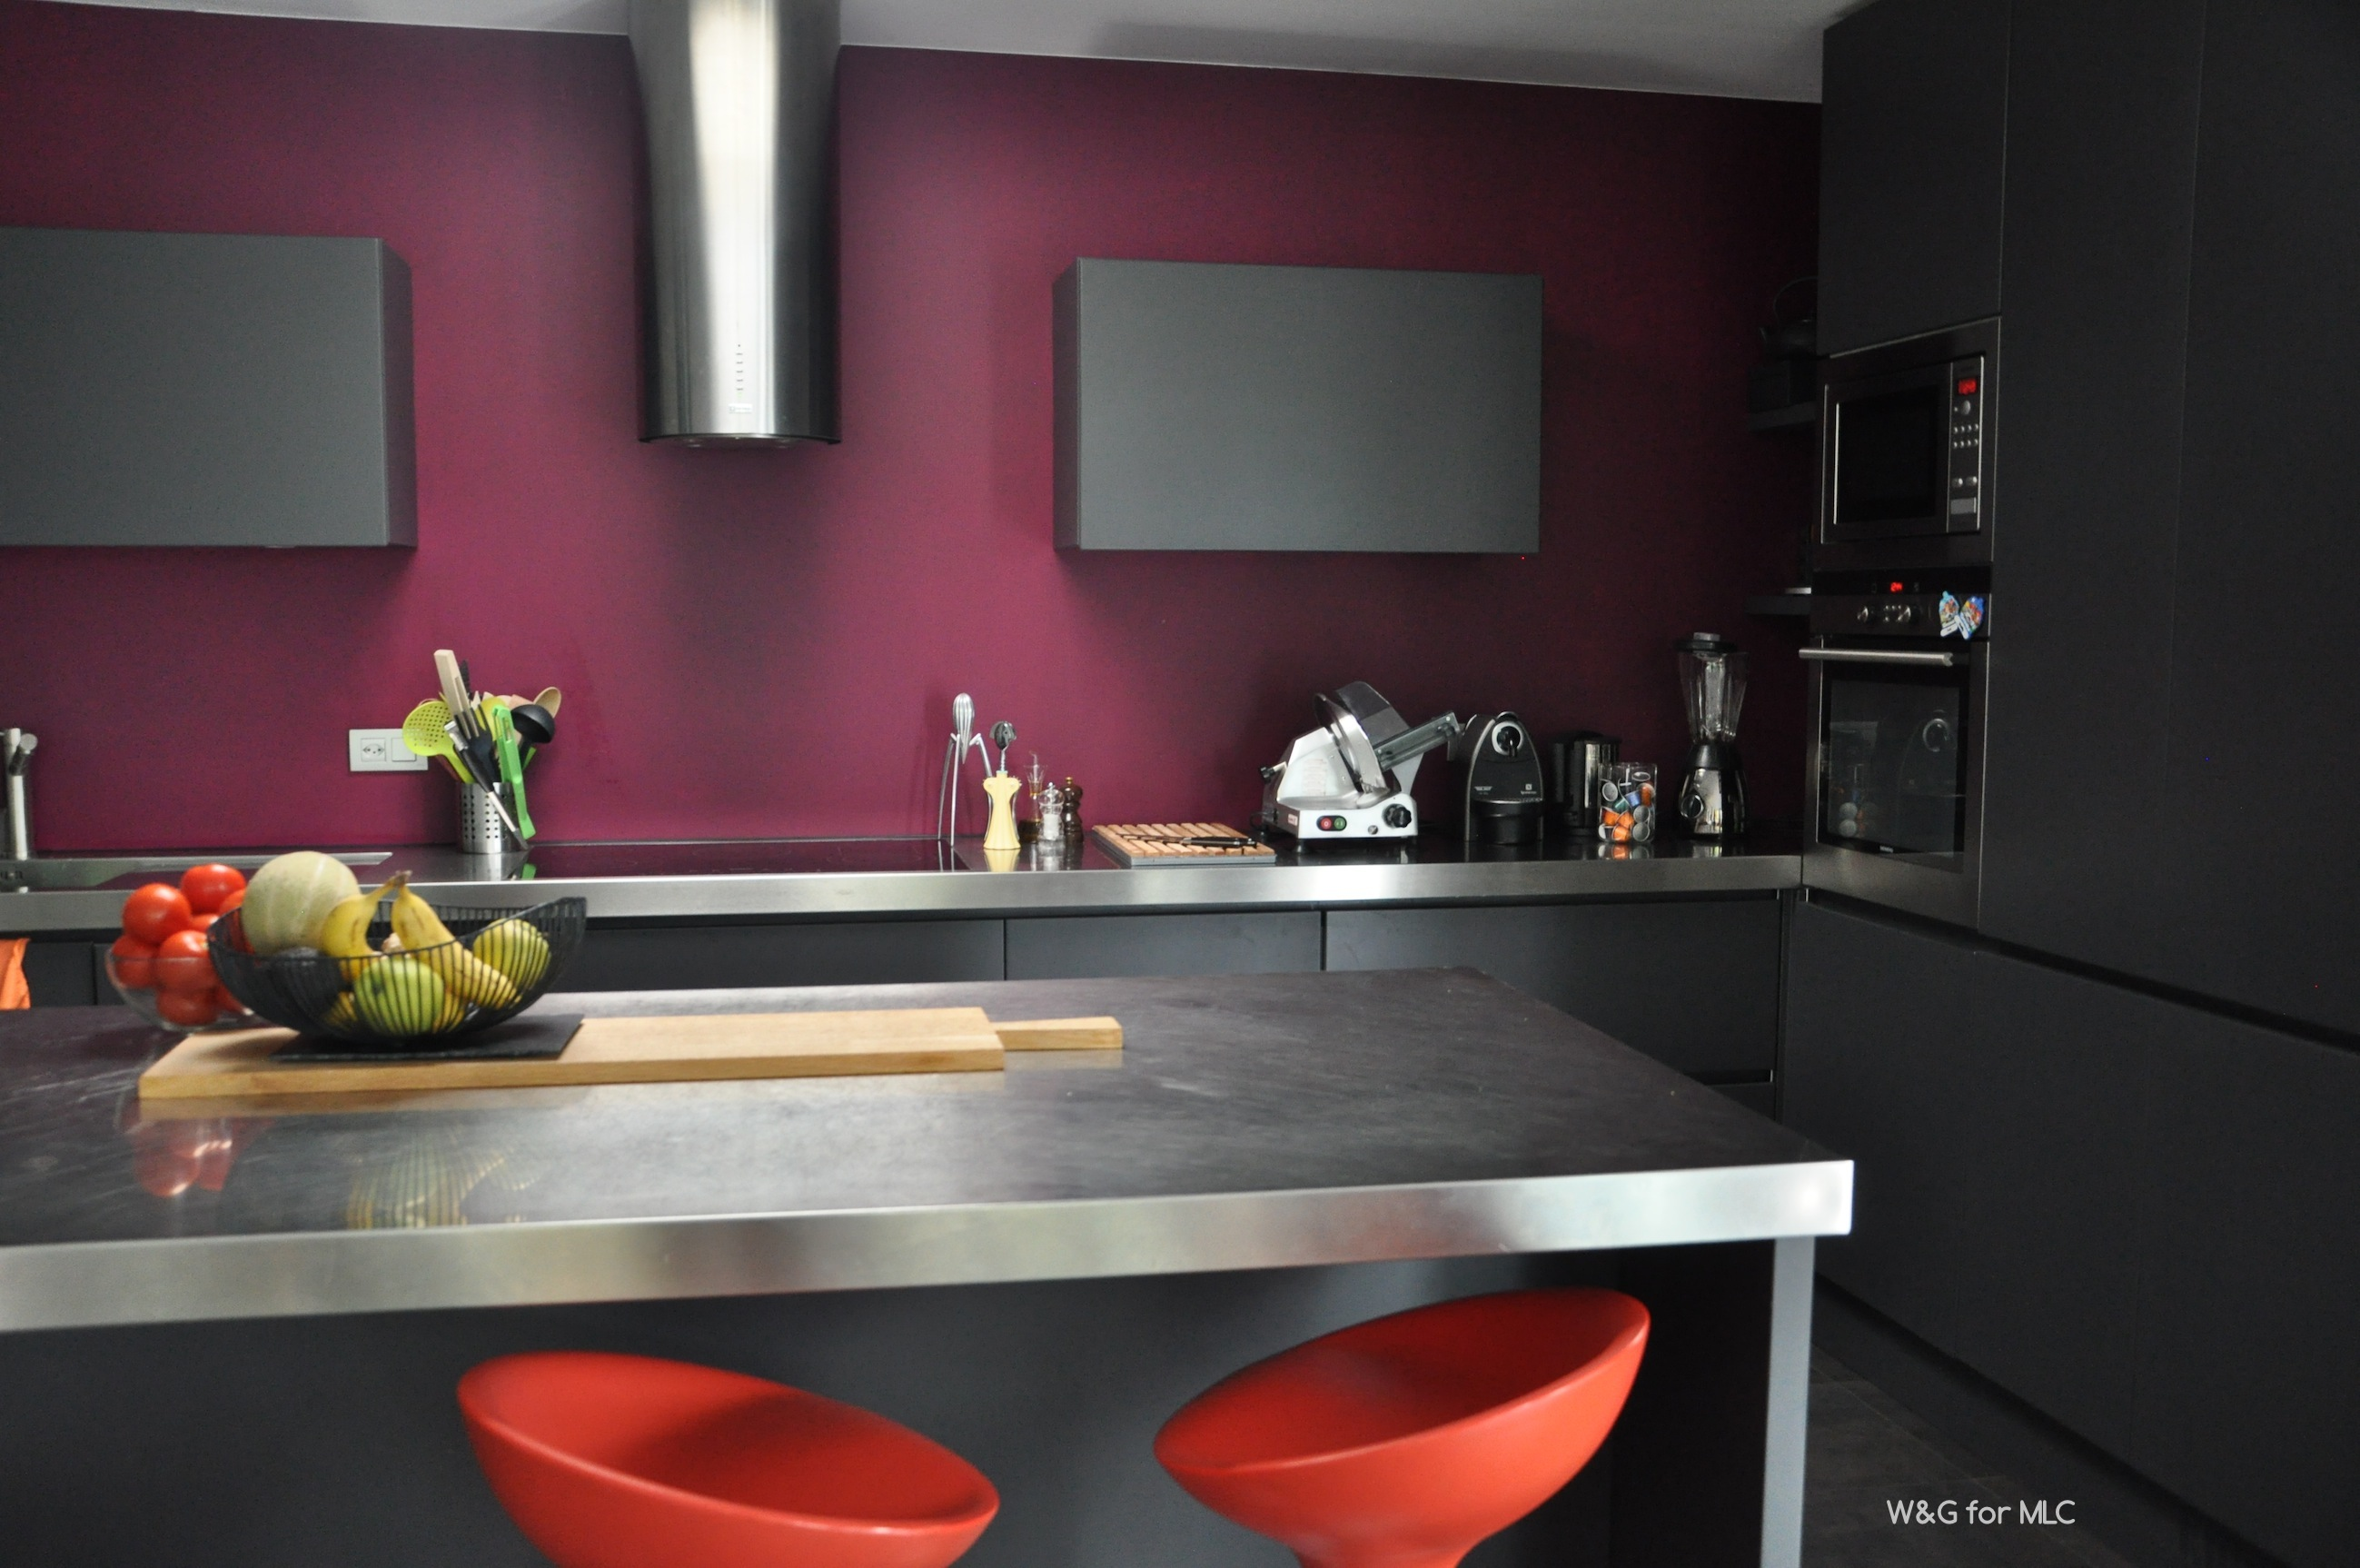 Cuisine anthracite sur fond fushia archives le blog d co for Photo interieur design